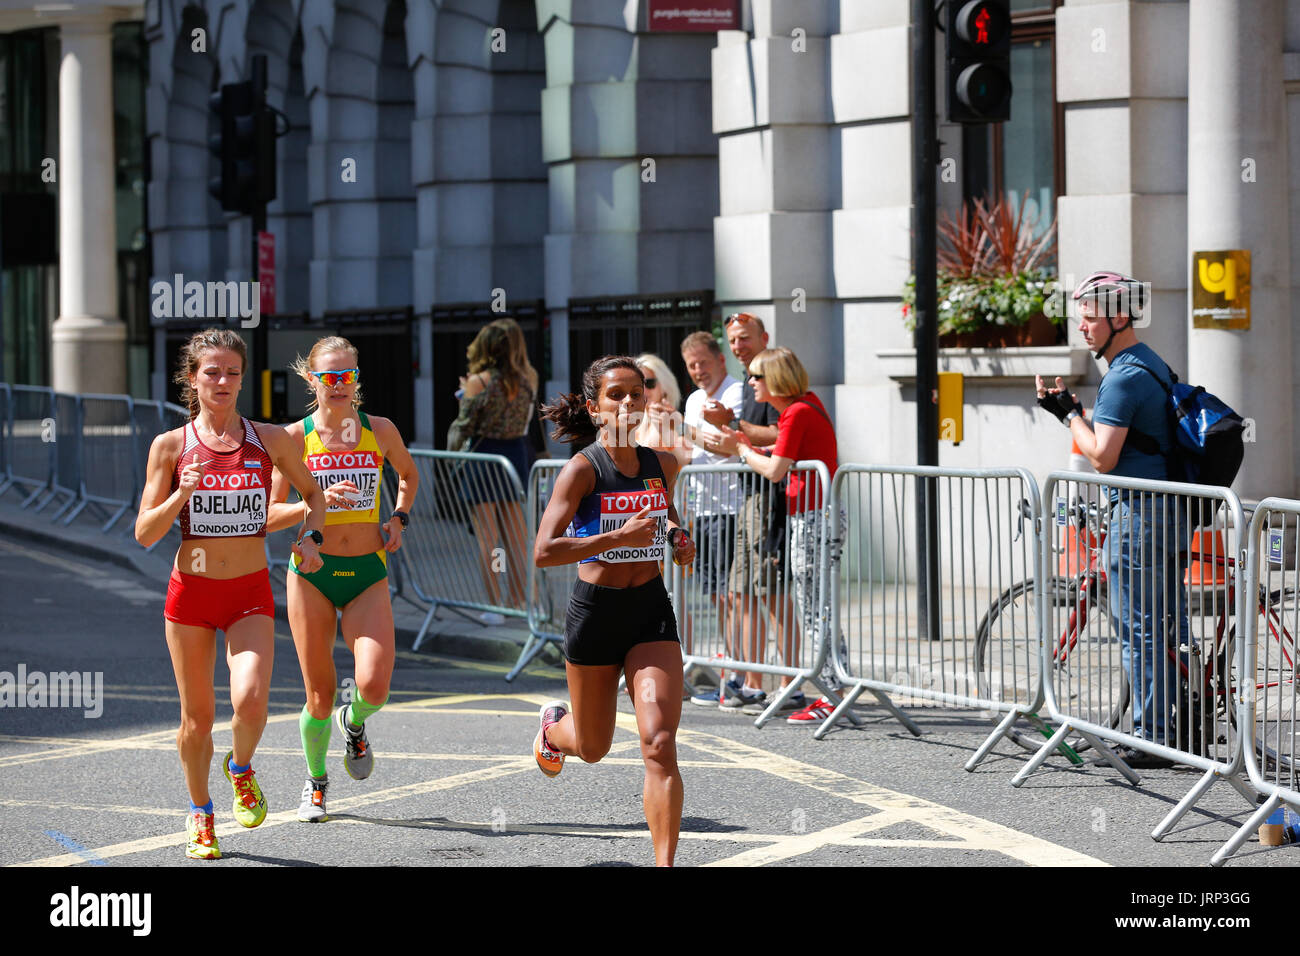 August 6th 2017 World Athletics Championship in London. IAAF women marathon 06/08/2017 started at 2pm local time. Stock Photo